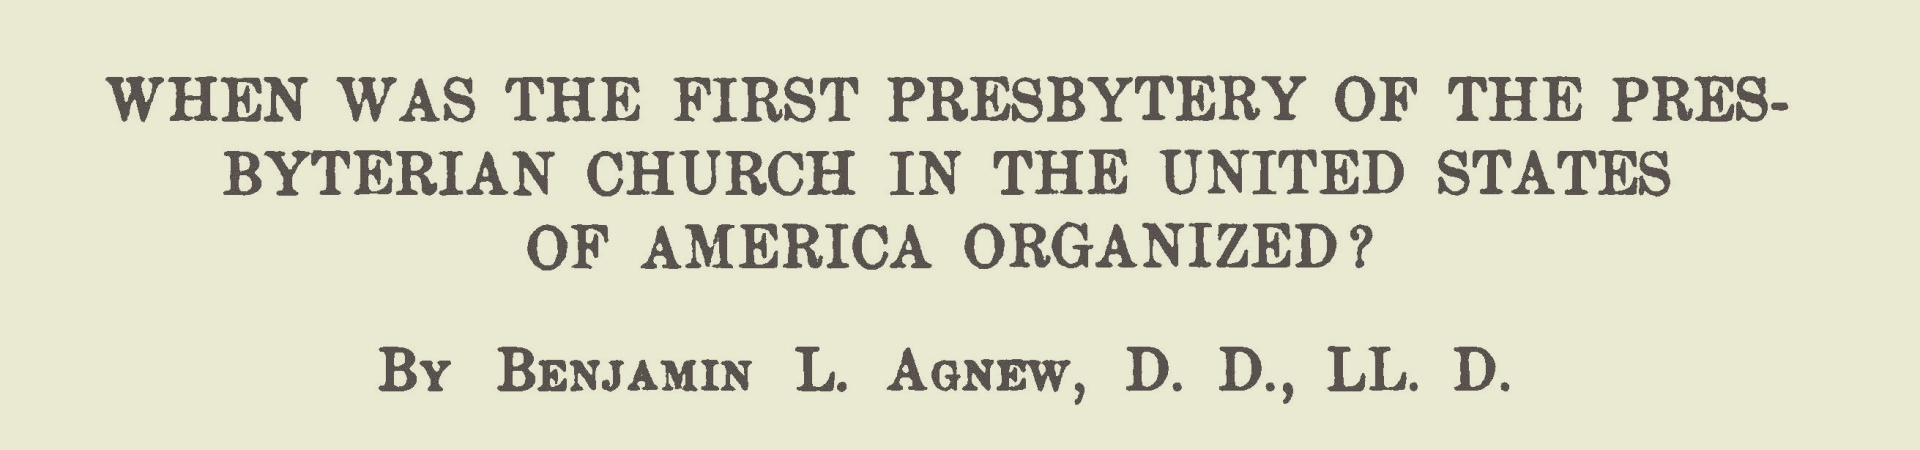 Agnew, Benjamin Lashells, When Was the First Presbytery Title Page.jpg